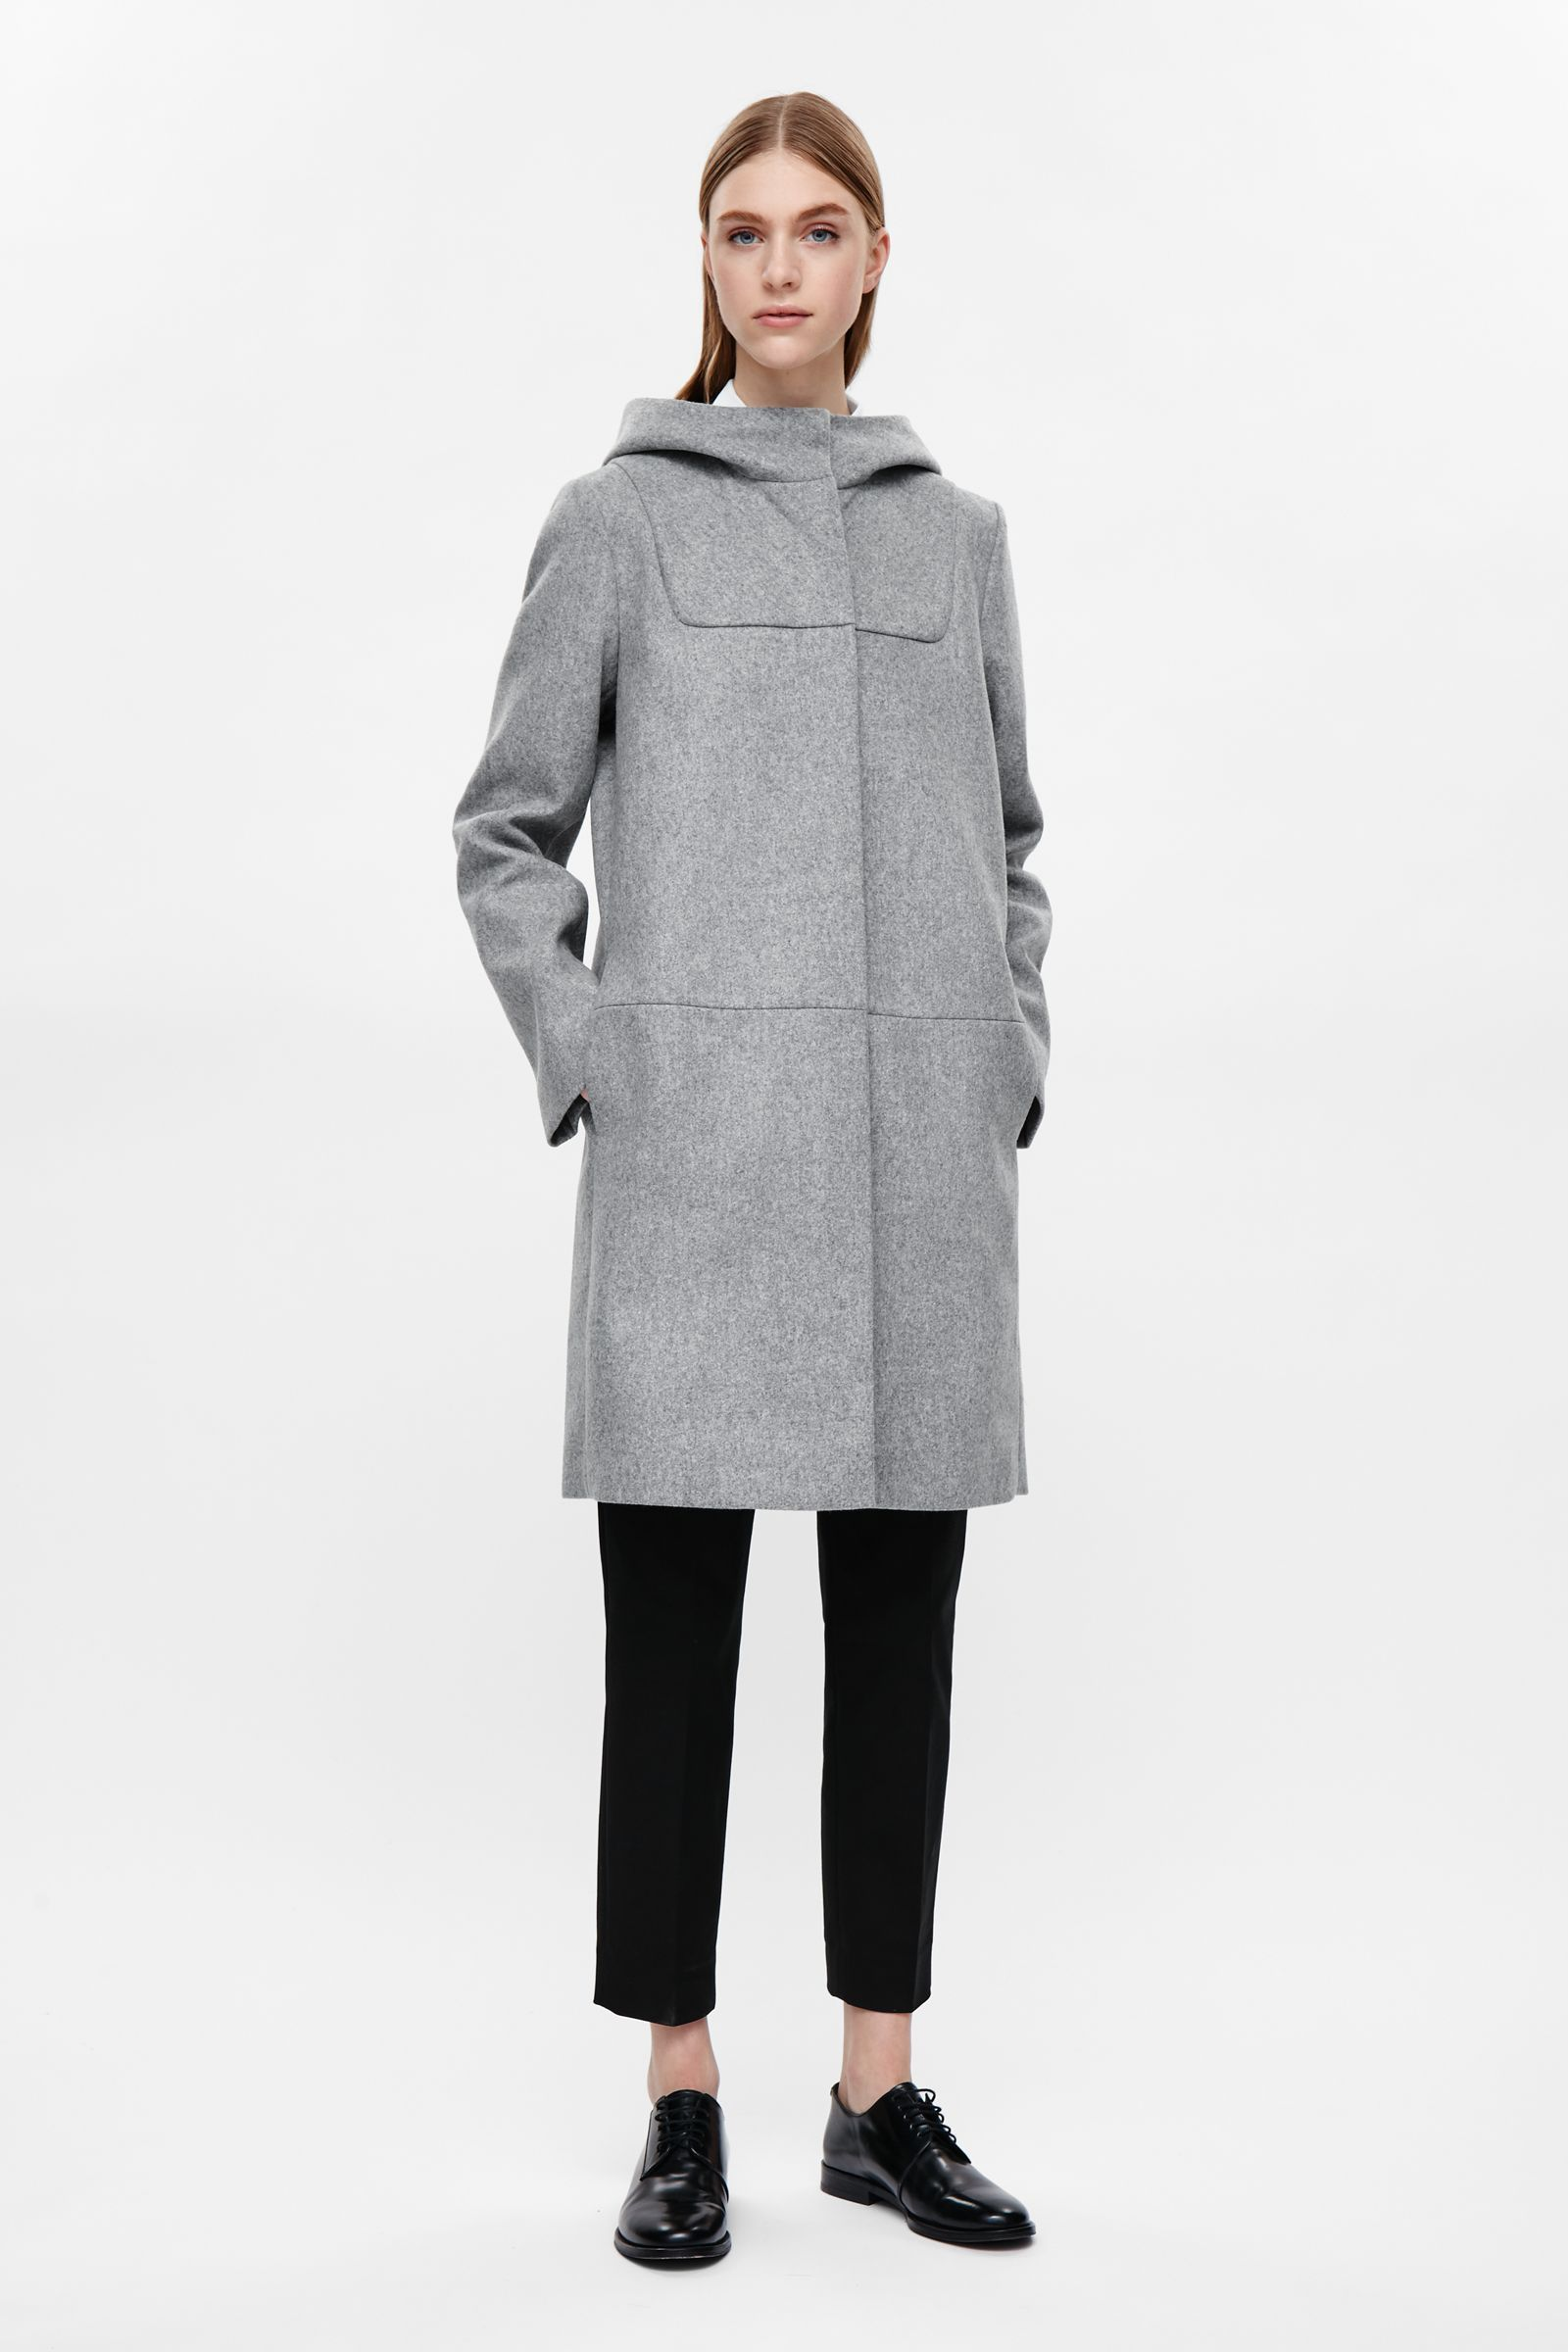 COS image 1 of Wool duffle coat in Grey | Clothes | Pinterest ...